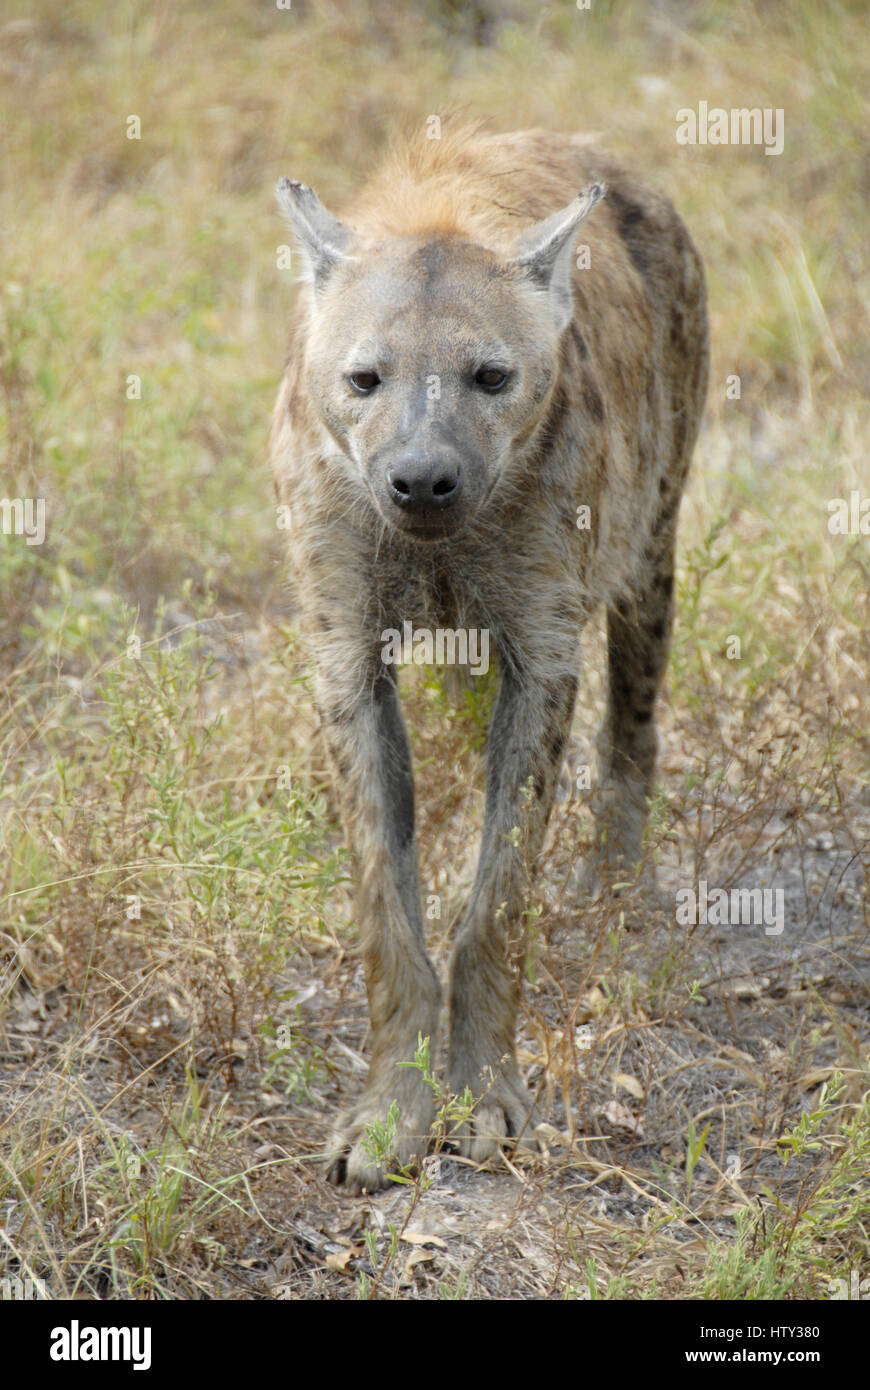 Spotted Hyena, Kruger National Park, South Africa - Stock Image